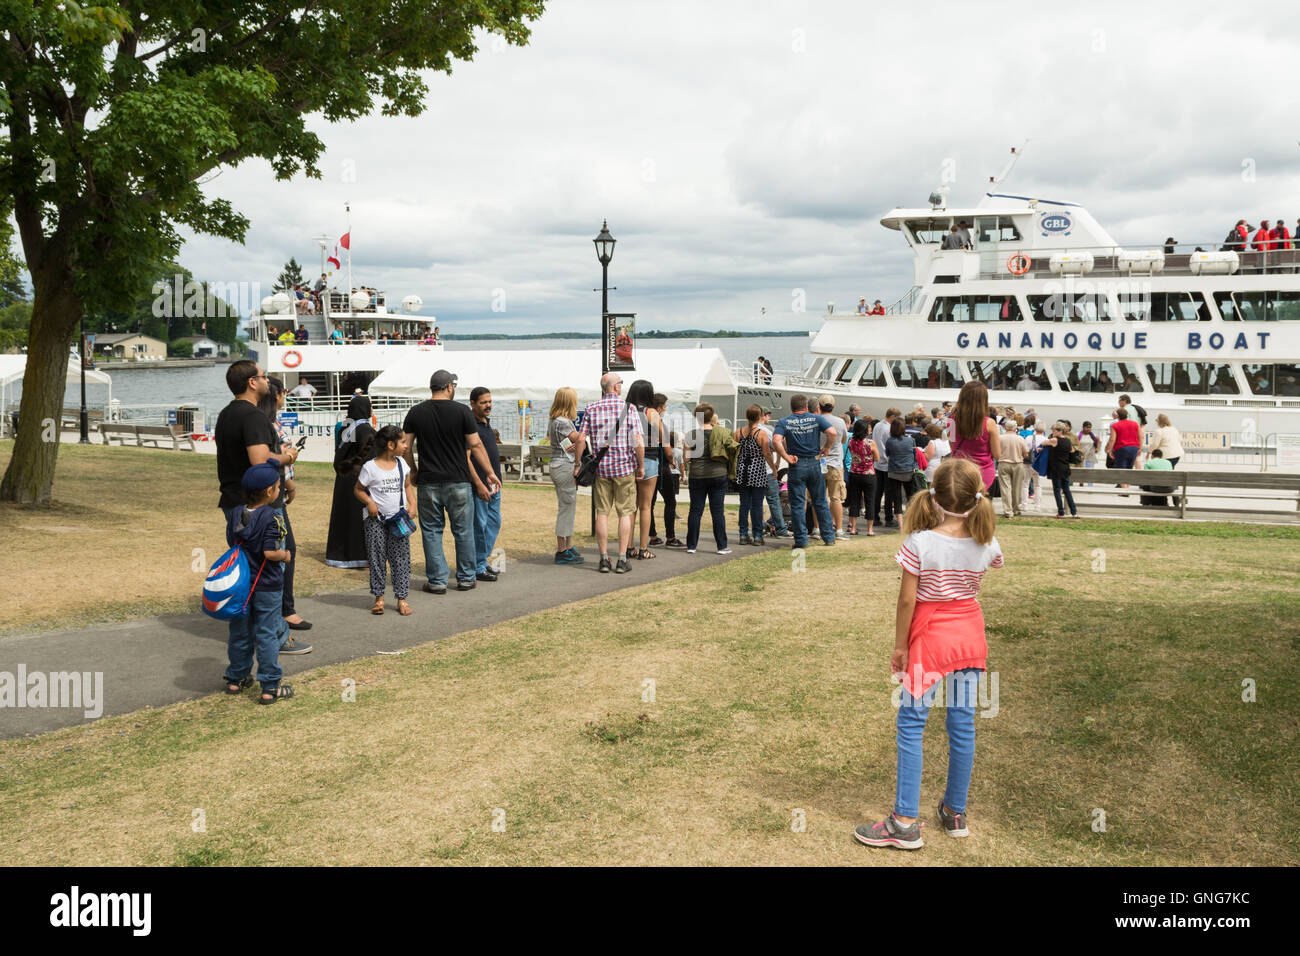 Gananoque, Ontario, Canada - tourists queuing for Thousand Islands Cruise boats on St Lawrence River by Gananoque - Stock Image